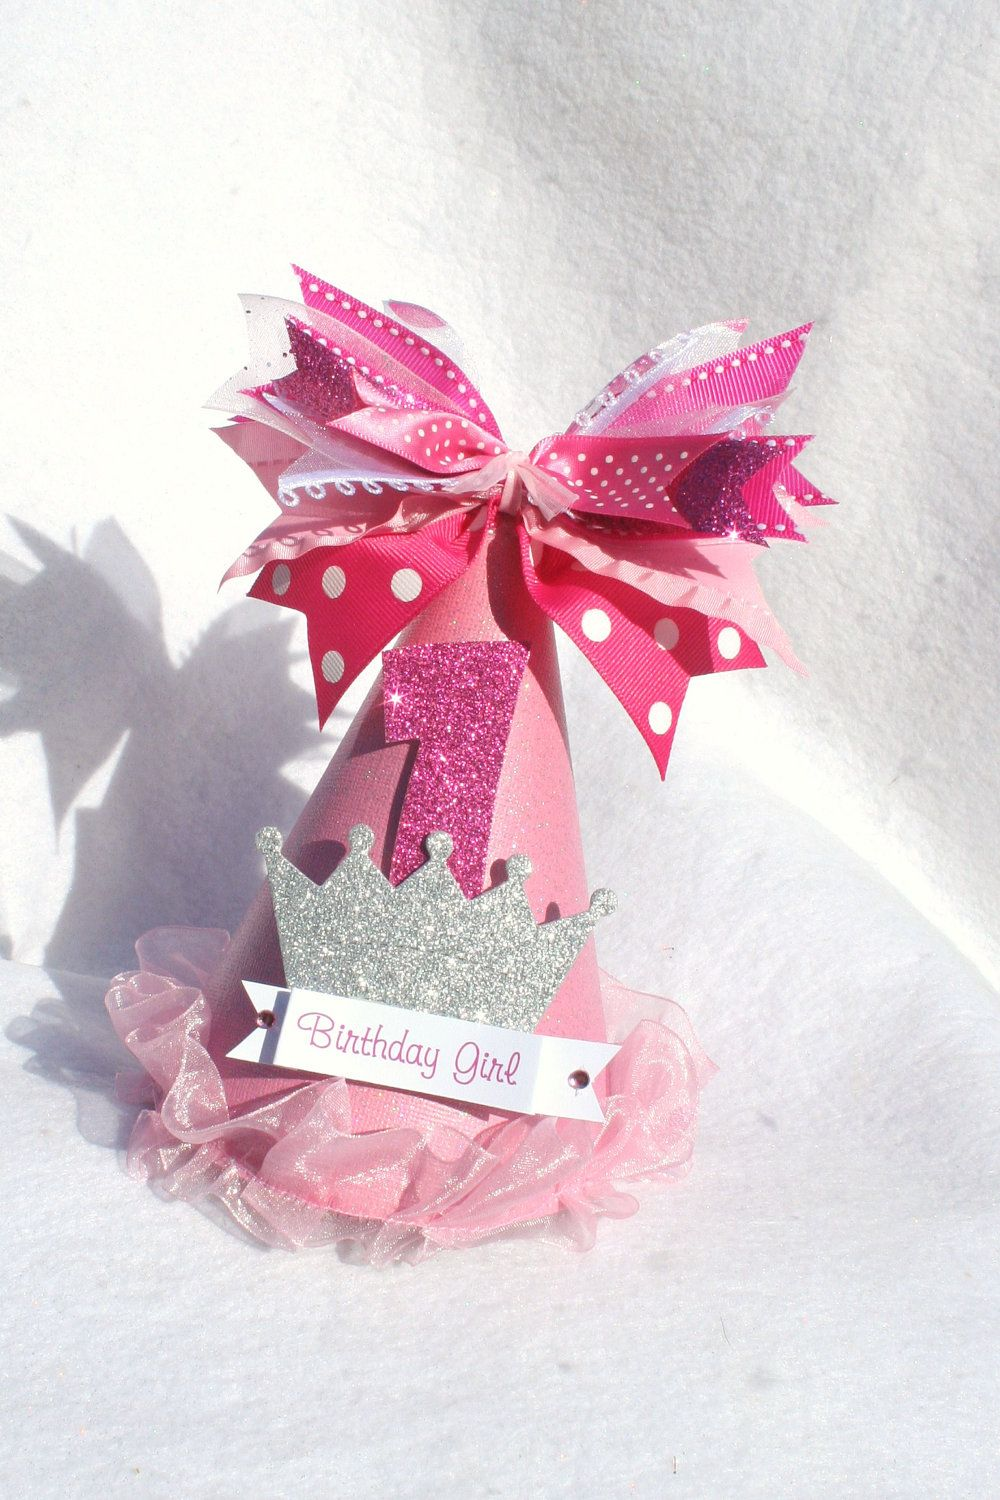 Cute idea Blairs Birthday Pinterest Pink sparkly Princess